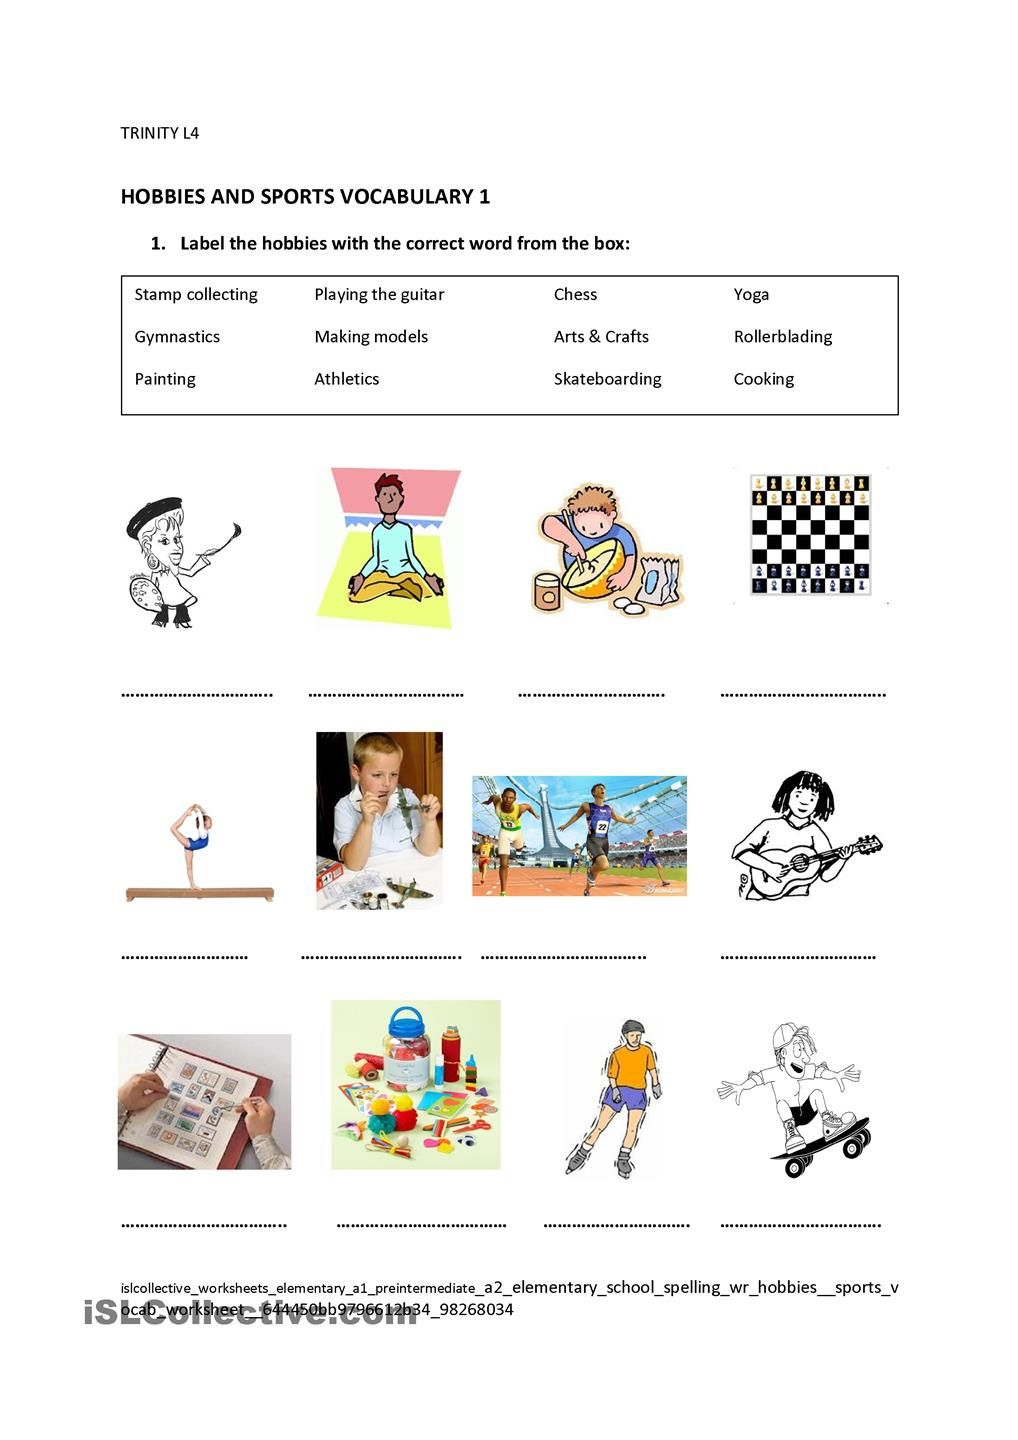 hobbies sports vocabulary sports and games vocabulary vocabulary worksheets y hobbies. Black Bedroom Furniture Sets. Home Design Ideas